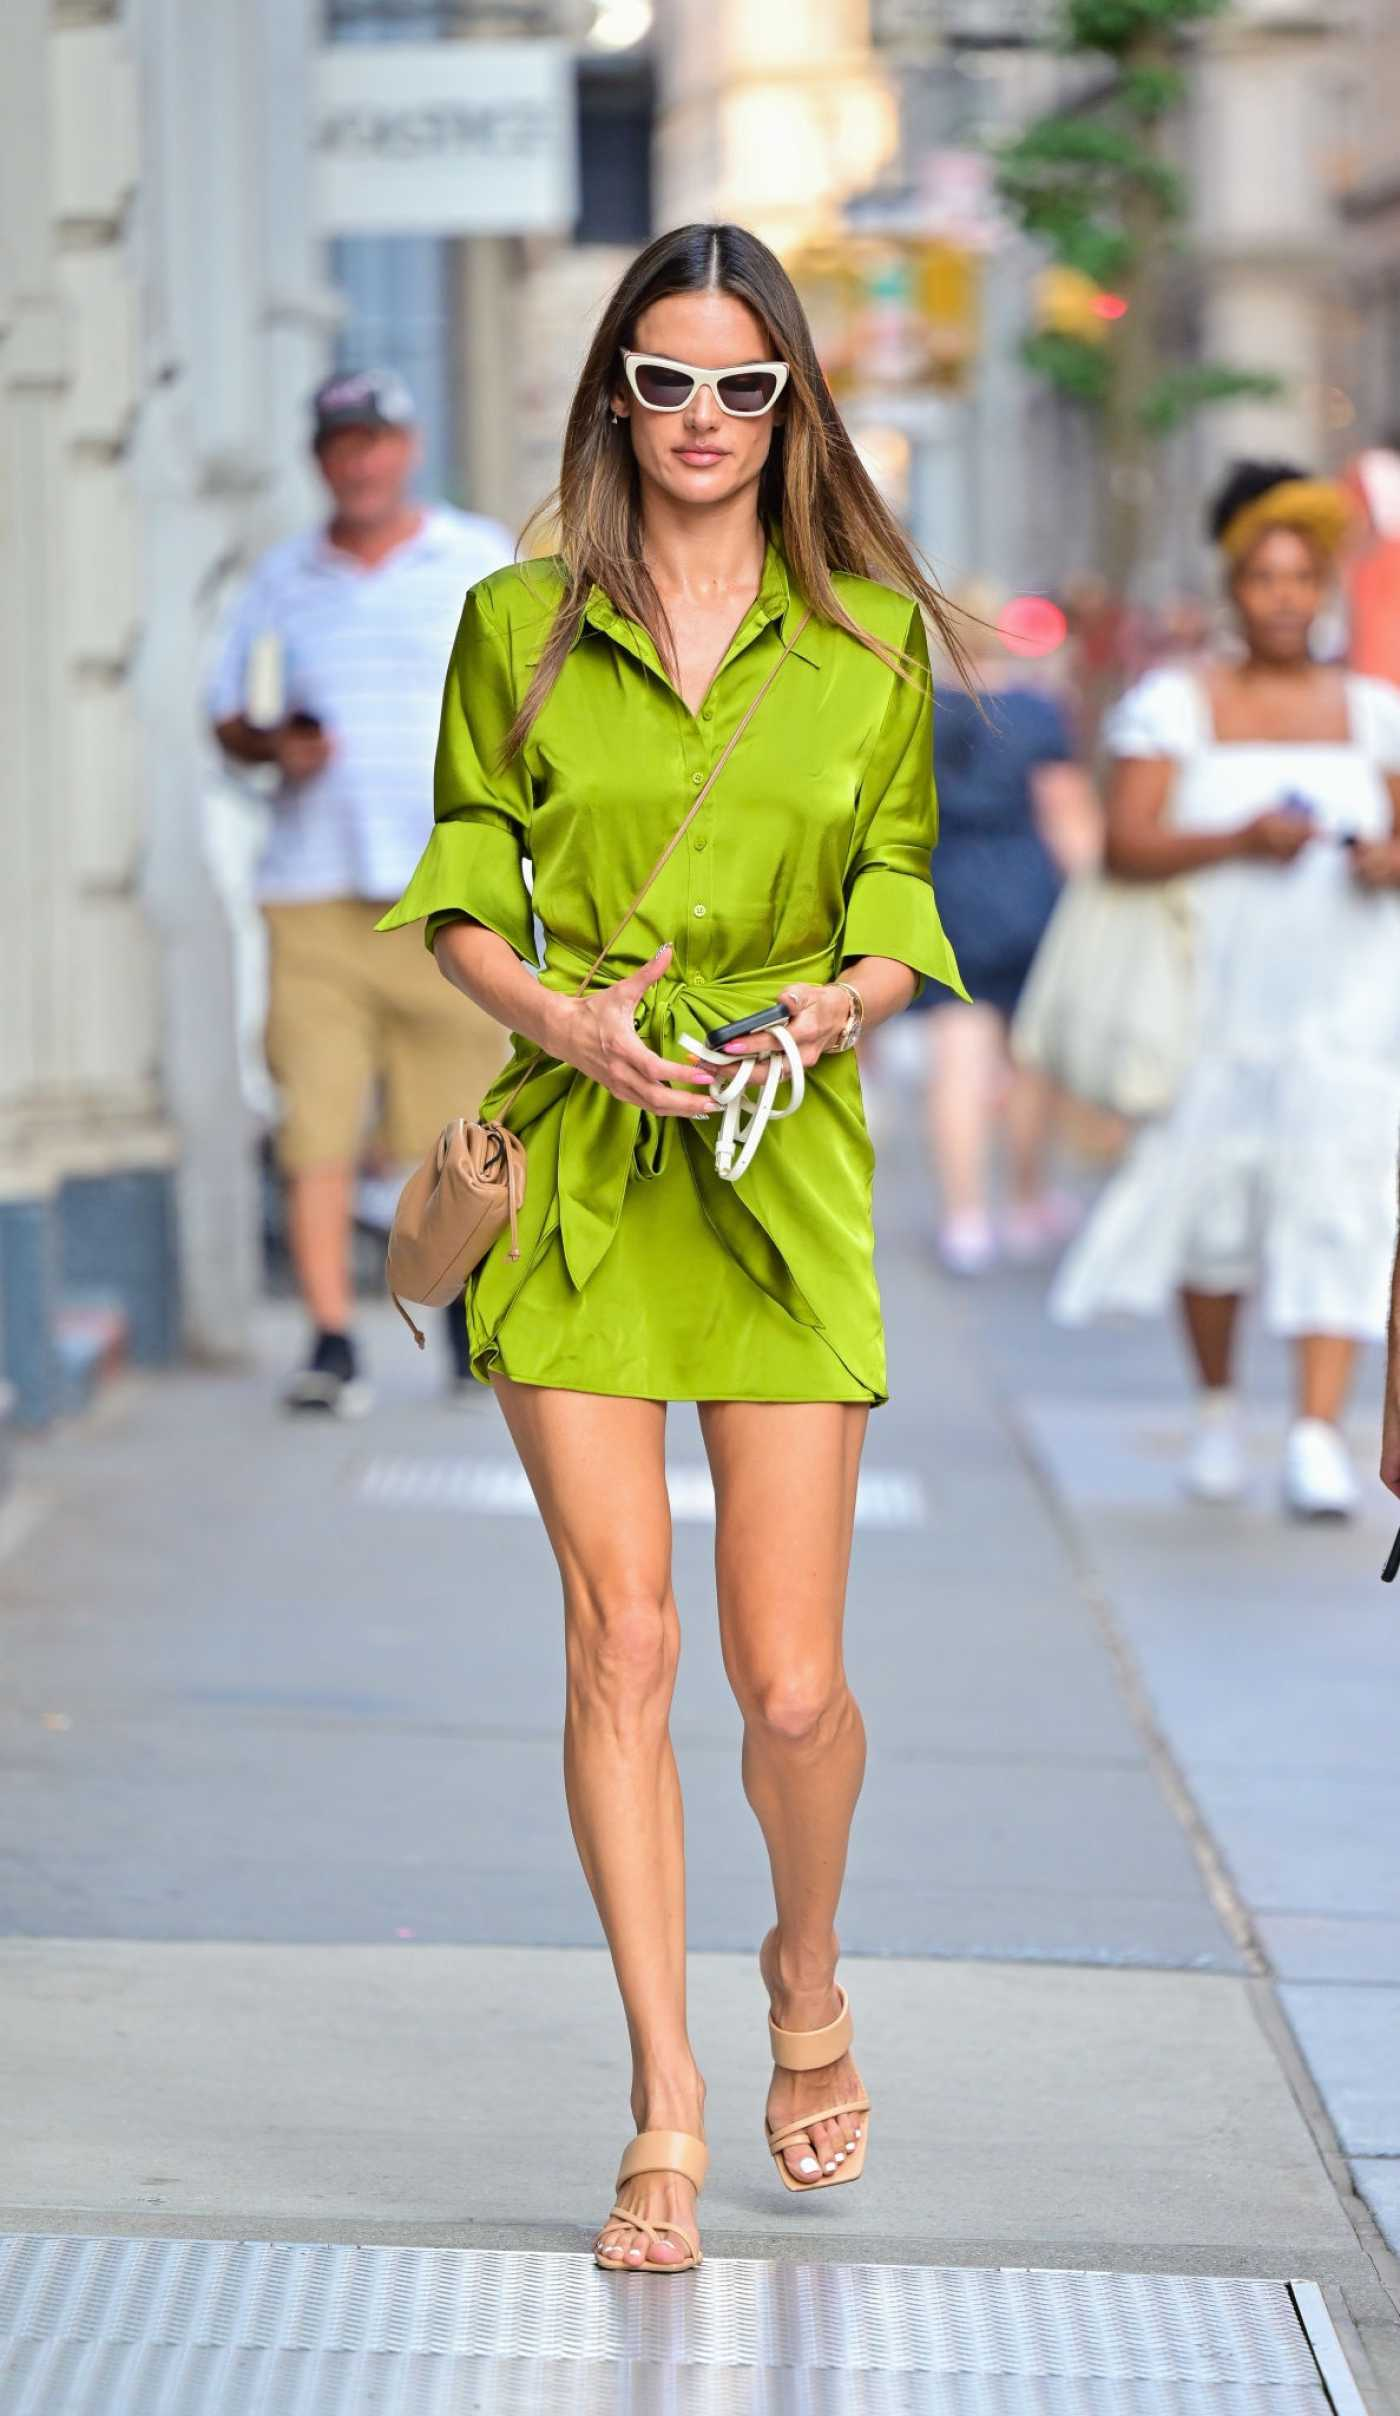 Alessandra Ambrosio in a Neon Green Mini Dress Was Seen Out in SoHo in New York City 09/08/2021